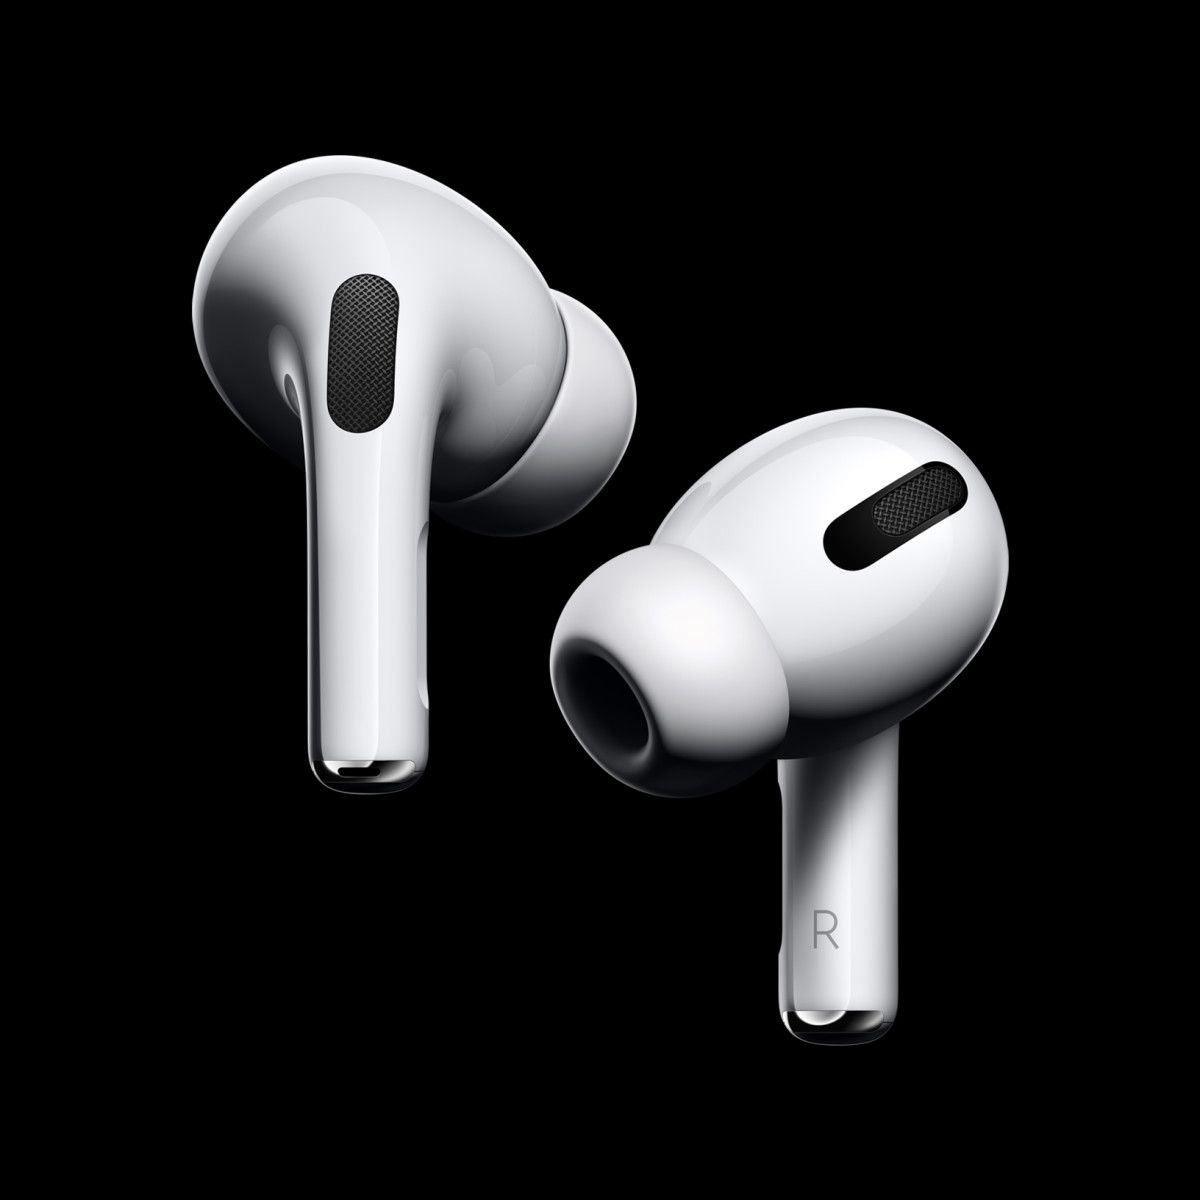 Apple Launches The Airpods Pro Airpods Pro Airpod Pro Noise Cancelling